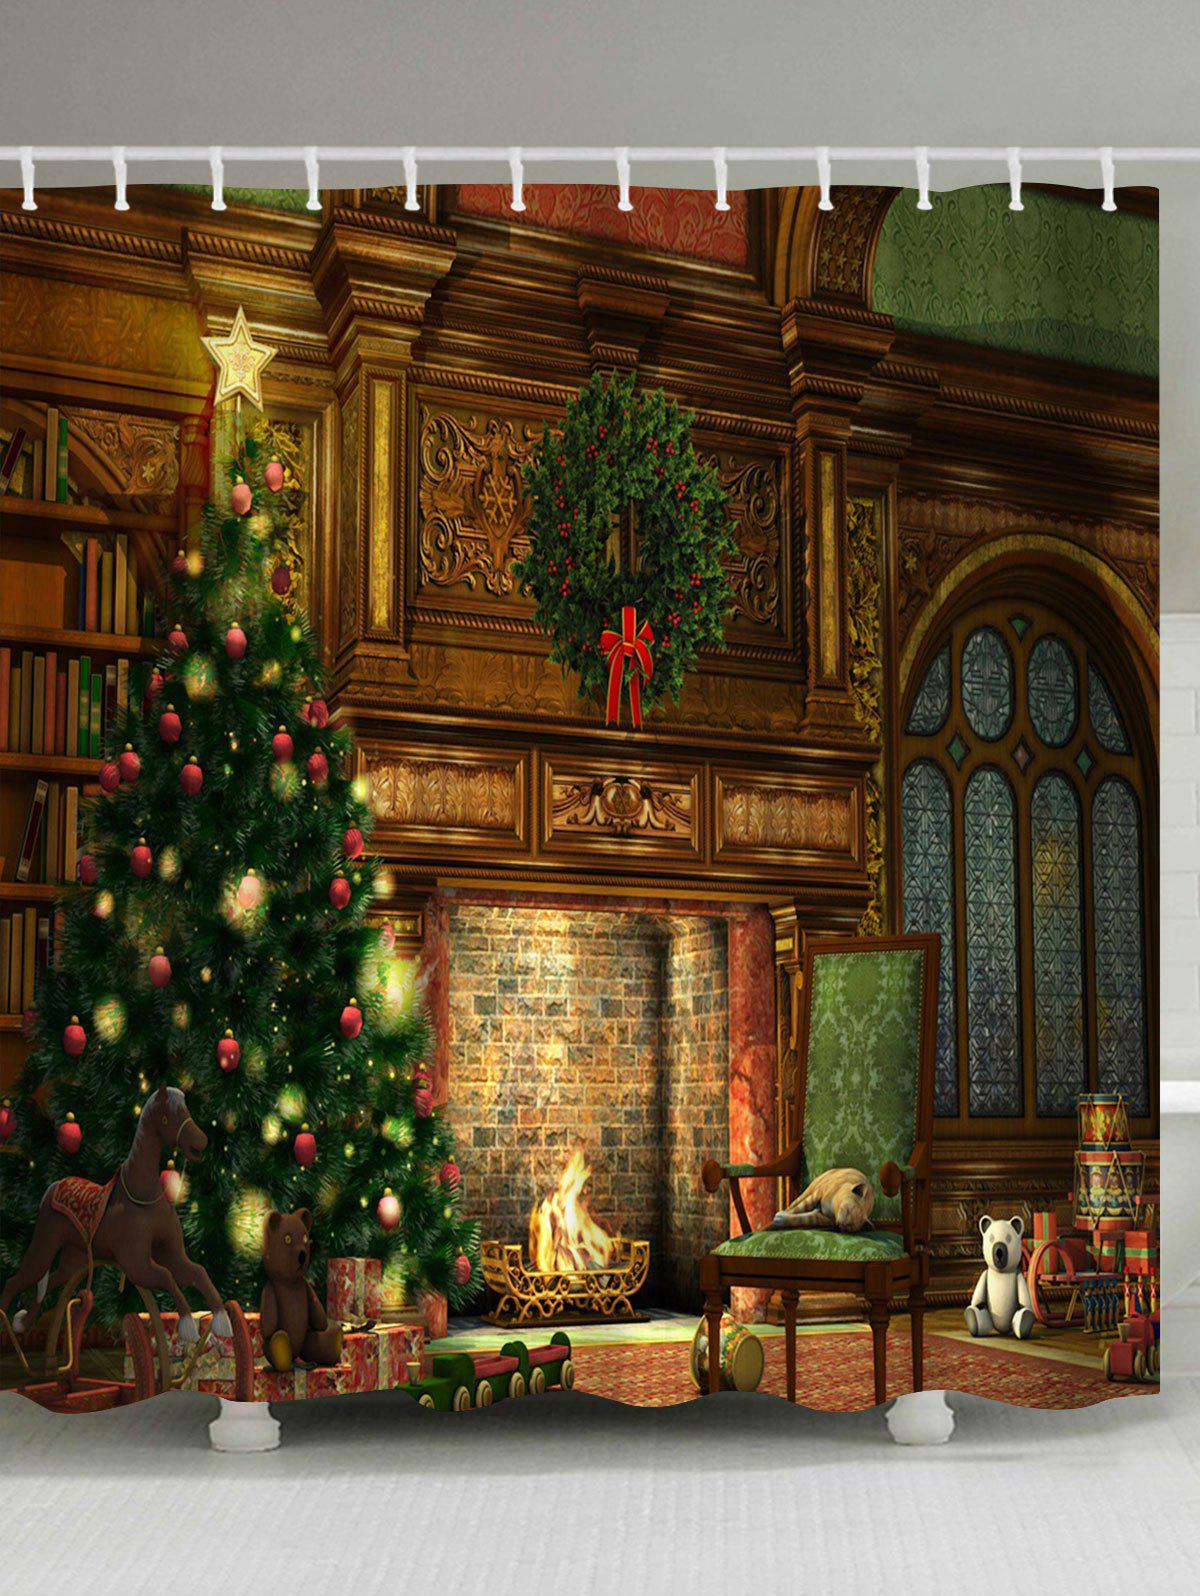 Christmas Fireplace Printed Waterproof Shower CurtainHOME<br><br>Size: W71 INCH * L79 INCH; Color: BROWN; Products Type: Shower Curtains; Materials: Polyester; Pattern: Christmas Tree; Style: Festival; Number of Hook Holes: W59 inch*L71 inch: 10; W71 inch*L71 inch: 12; W71 inch*L79 inch: 12; Package Contents: 1 x Shower Curtain 1 x Hooks (Set);